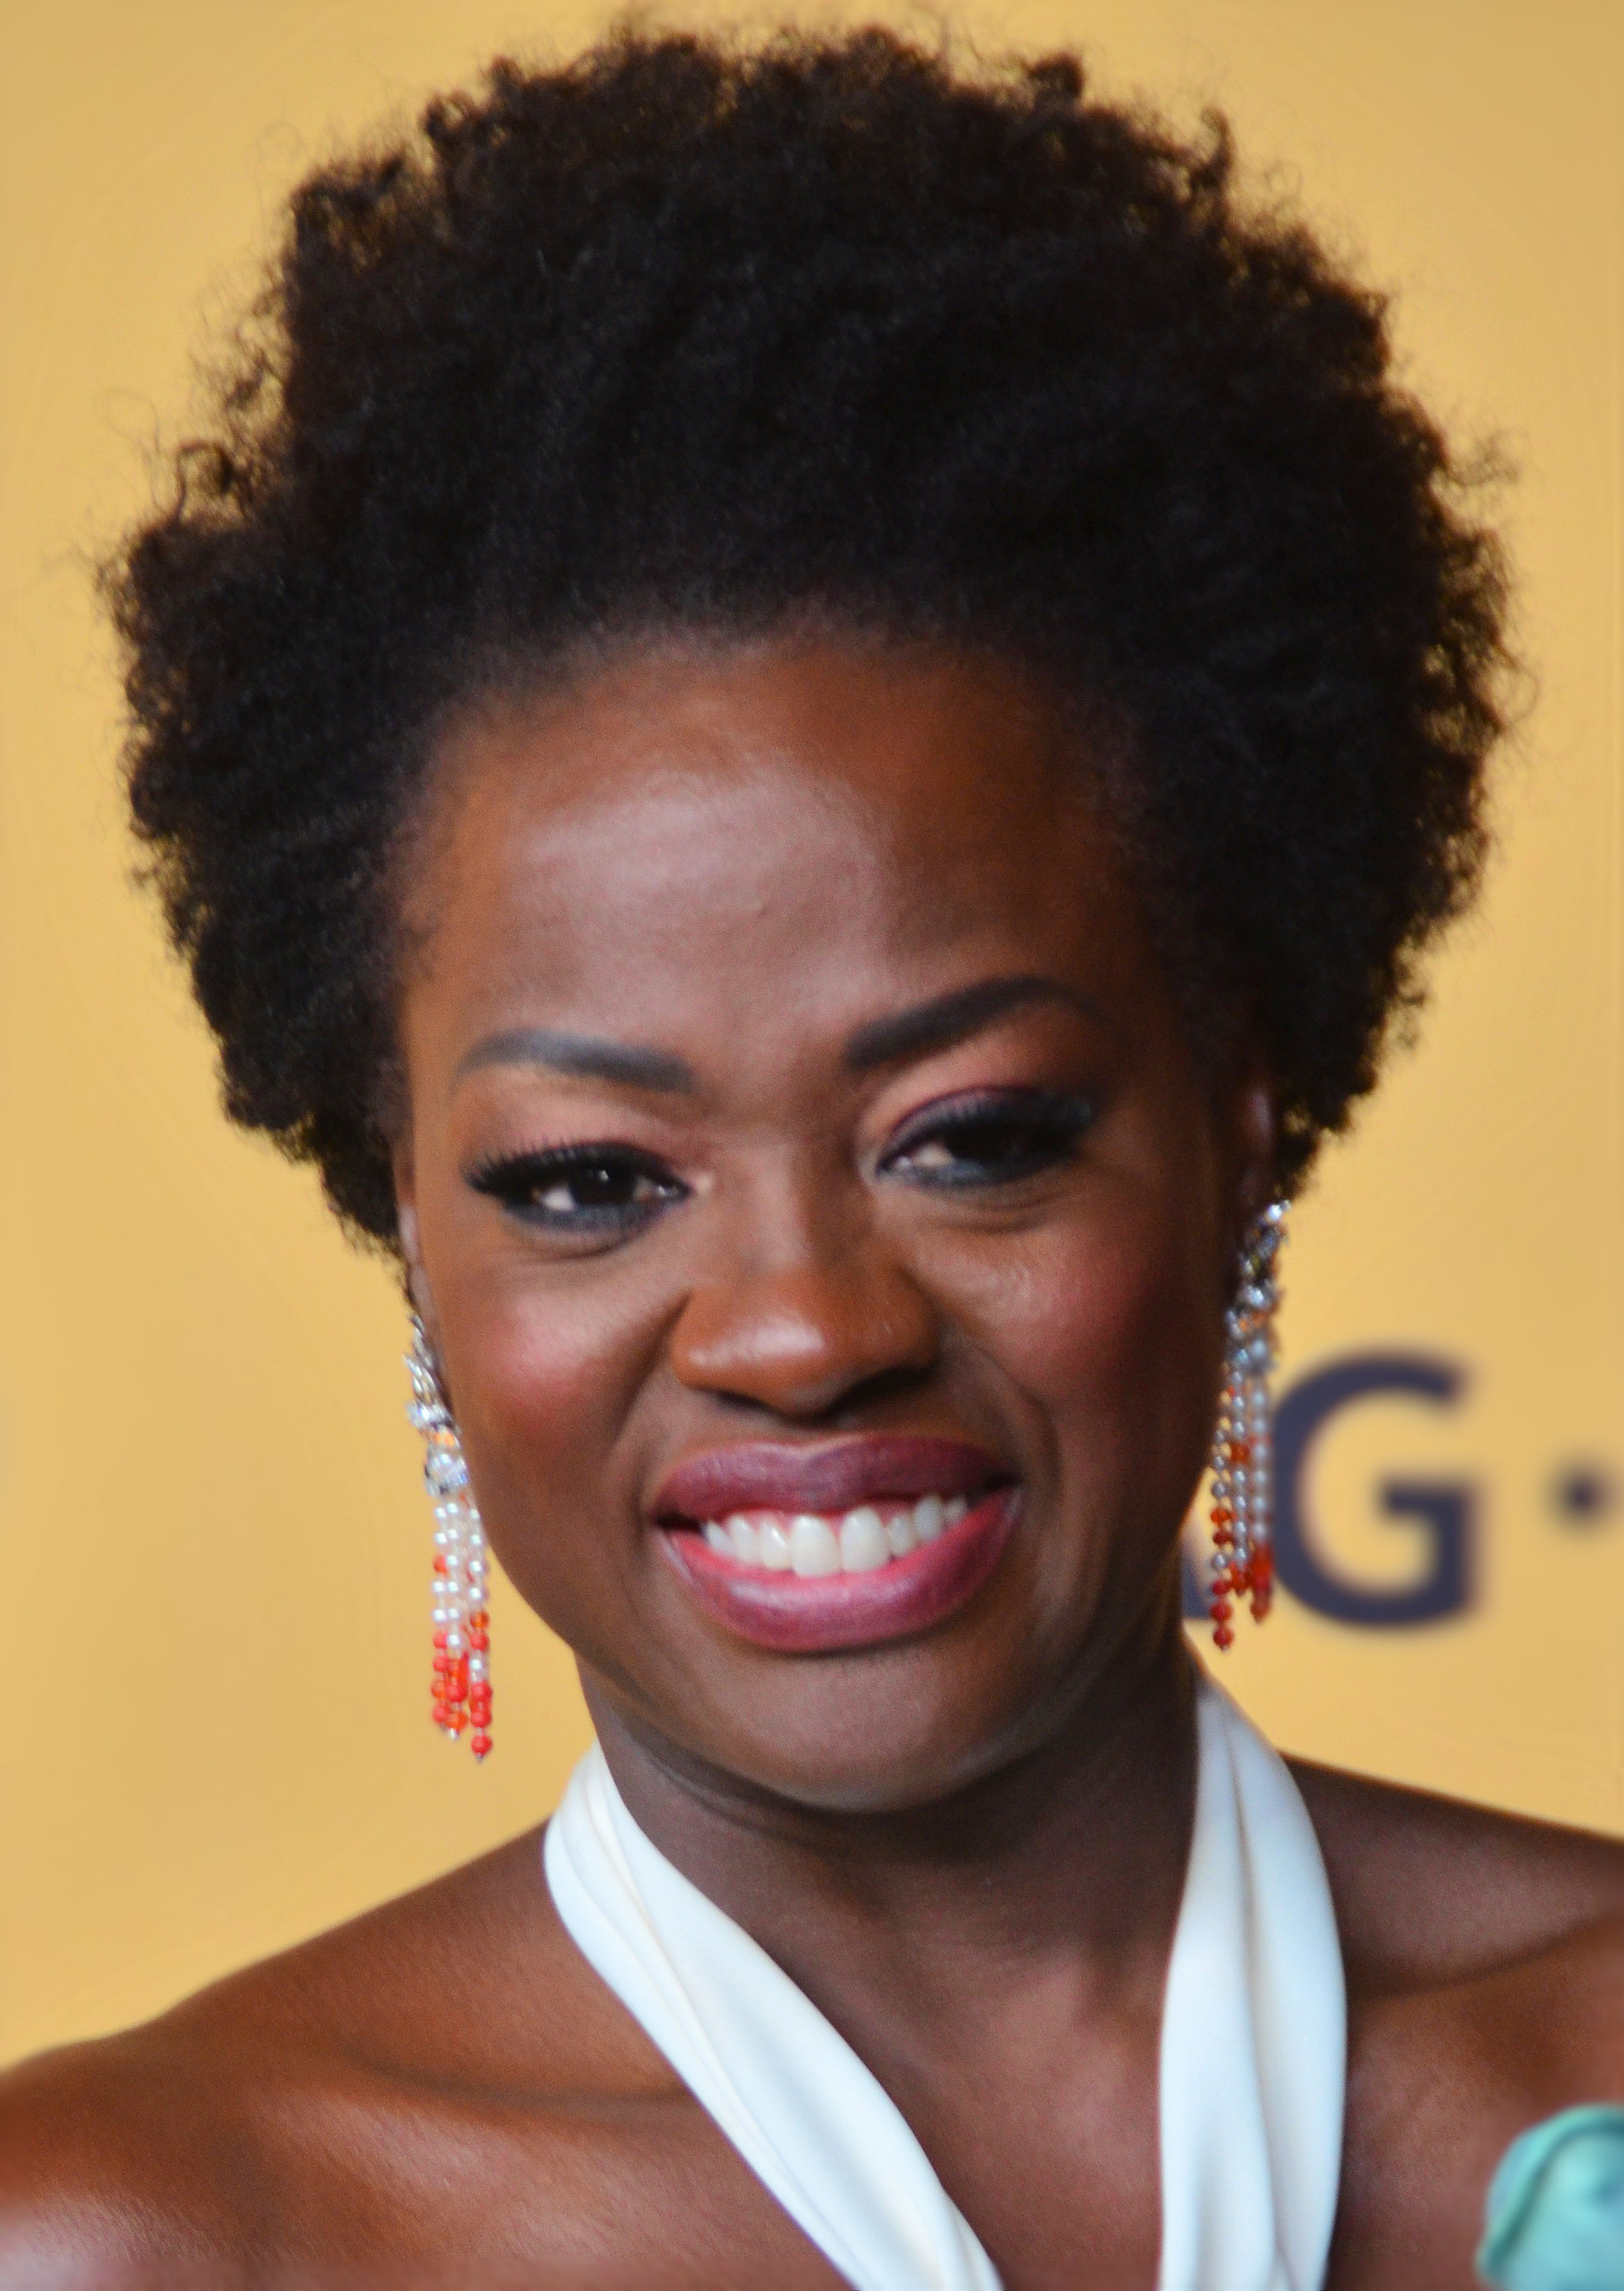 The 53-year old daughter of father Dan Davis and mother Mary Alice Viola Davis in 2018 photo. Viola Davis earned a  million dollar salary - leaving the net worth at 3 million in 2018